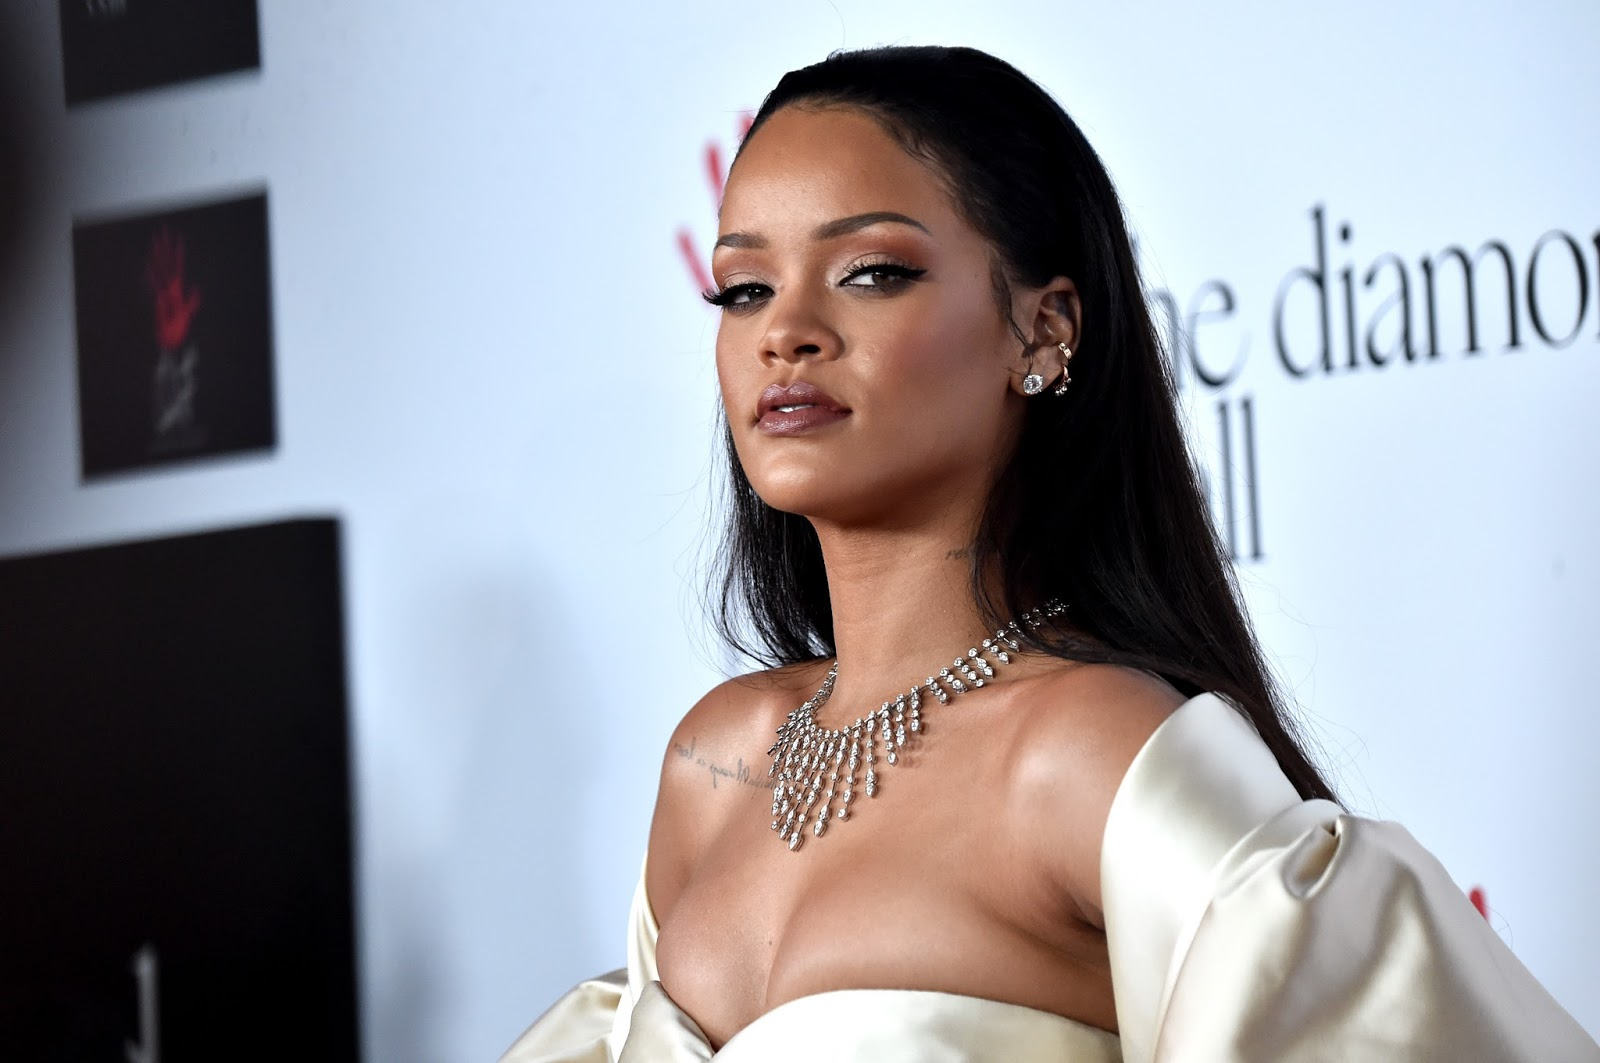 Rihanna hd wallpapar and images free download wallpaper hd images see here beautiful rihanna hd wallpaper laetst 2017 high definition images cute photos rihanna hairstyle pictures and rihanna hd wallpaper and pics free voltagebd Images